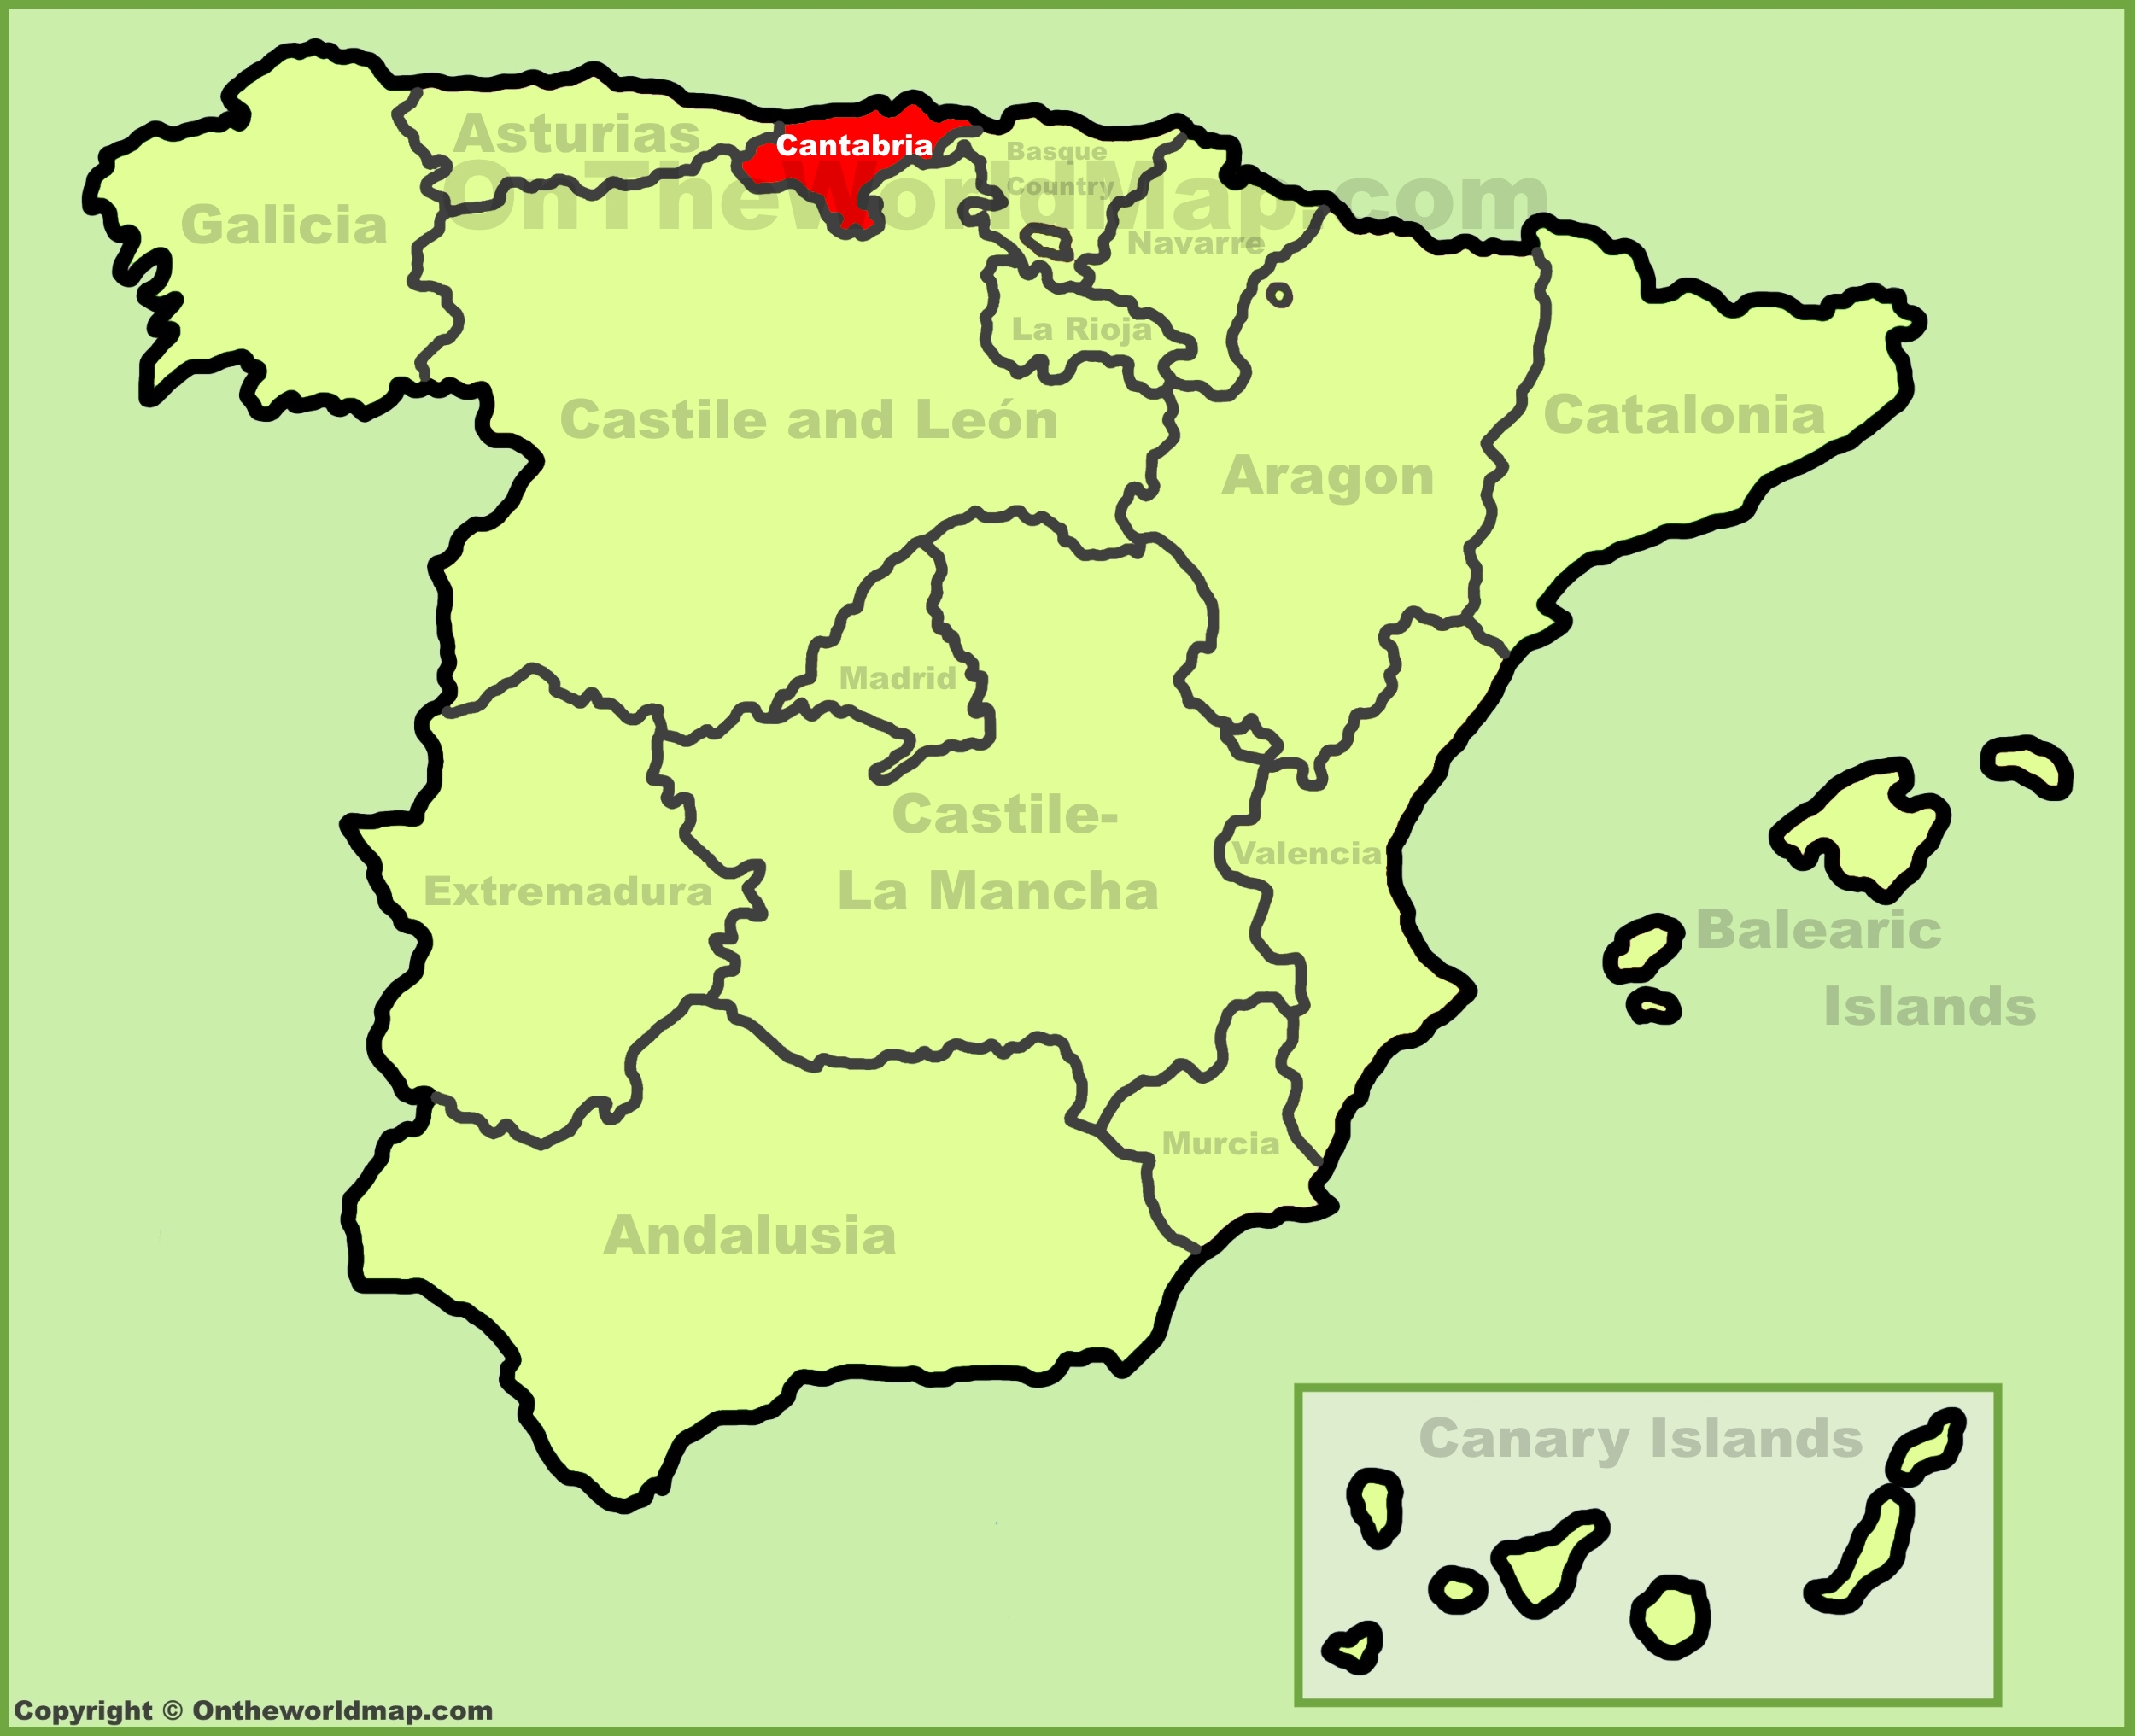 Cantabria location on the Spain map